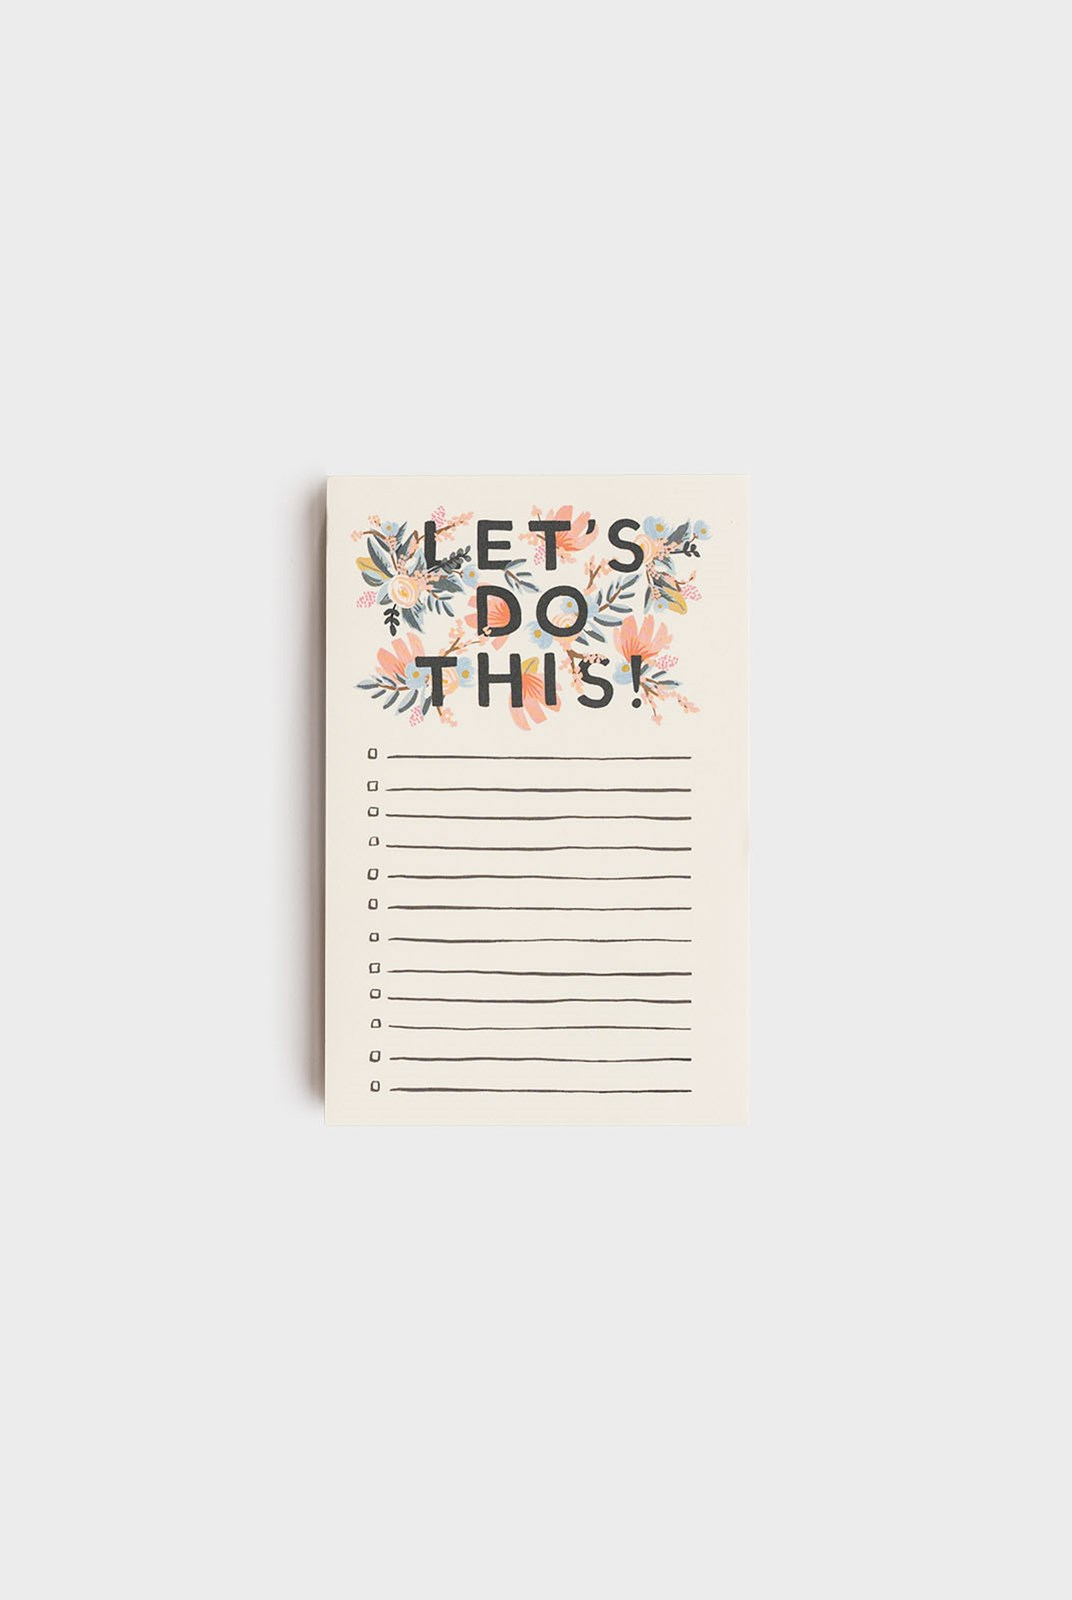 Rifle Paper Co - Notepad - Let's Do This